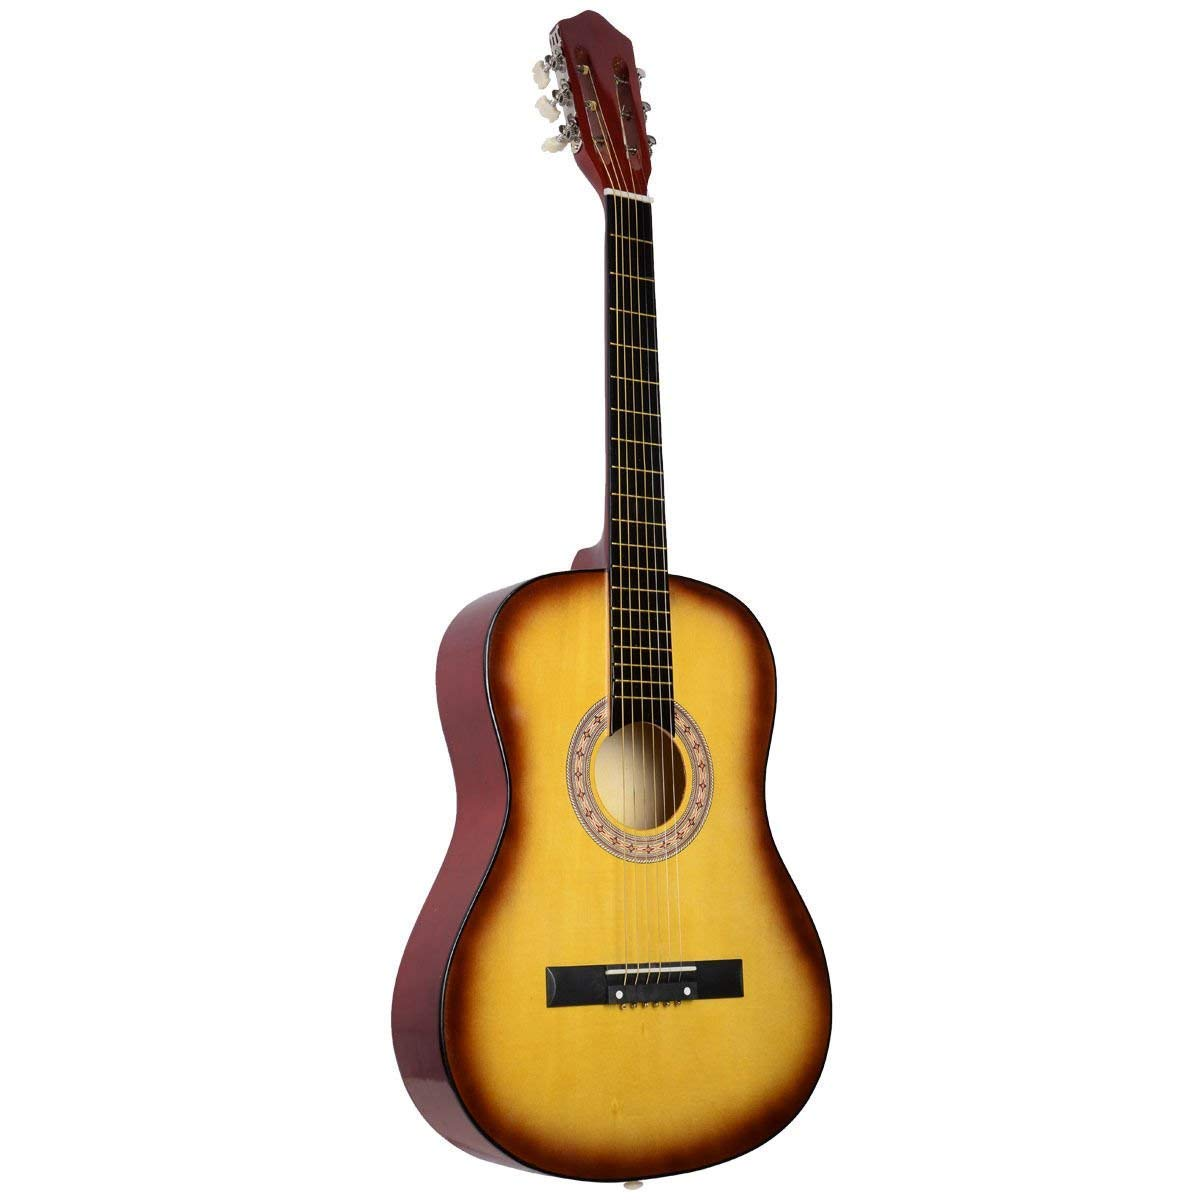 Goplus Acoustic Guitar with Guitar bag, Strap, Tuner and Guitar Pick for New Beginners, Yellow